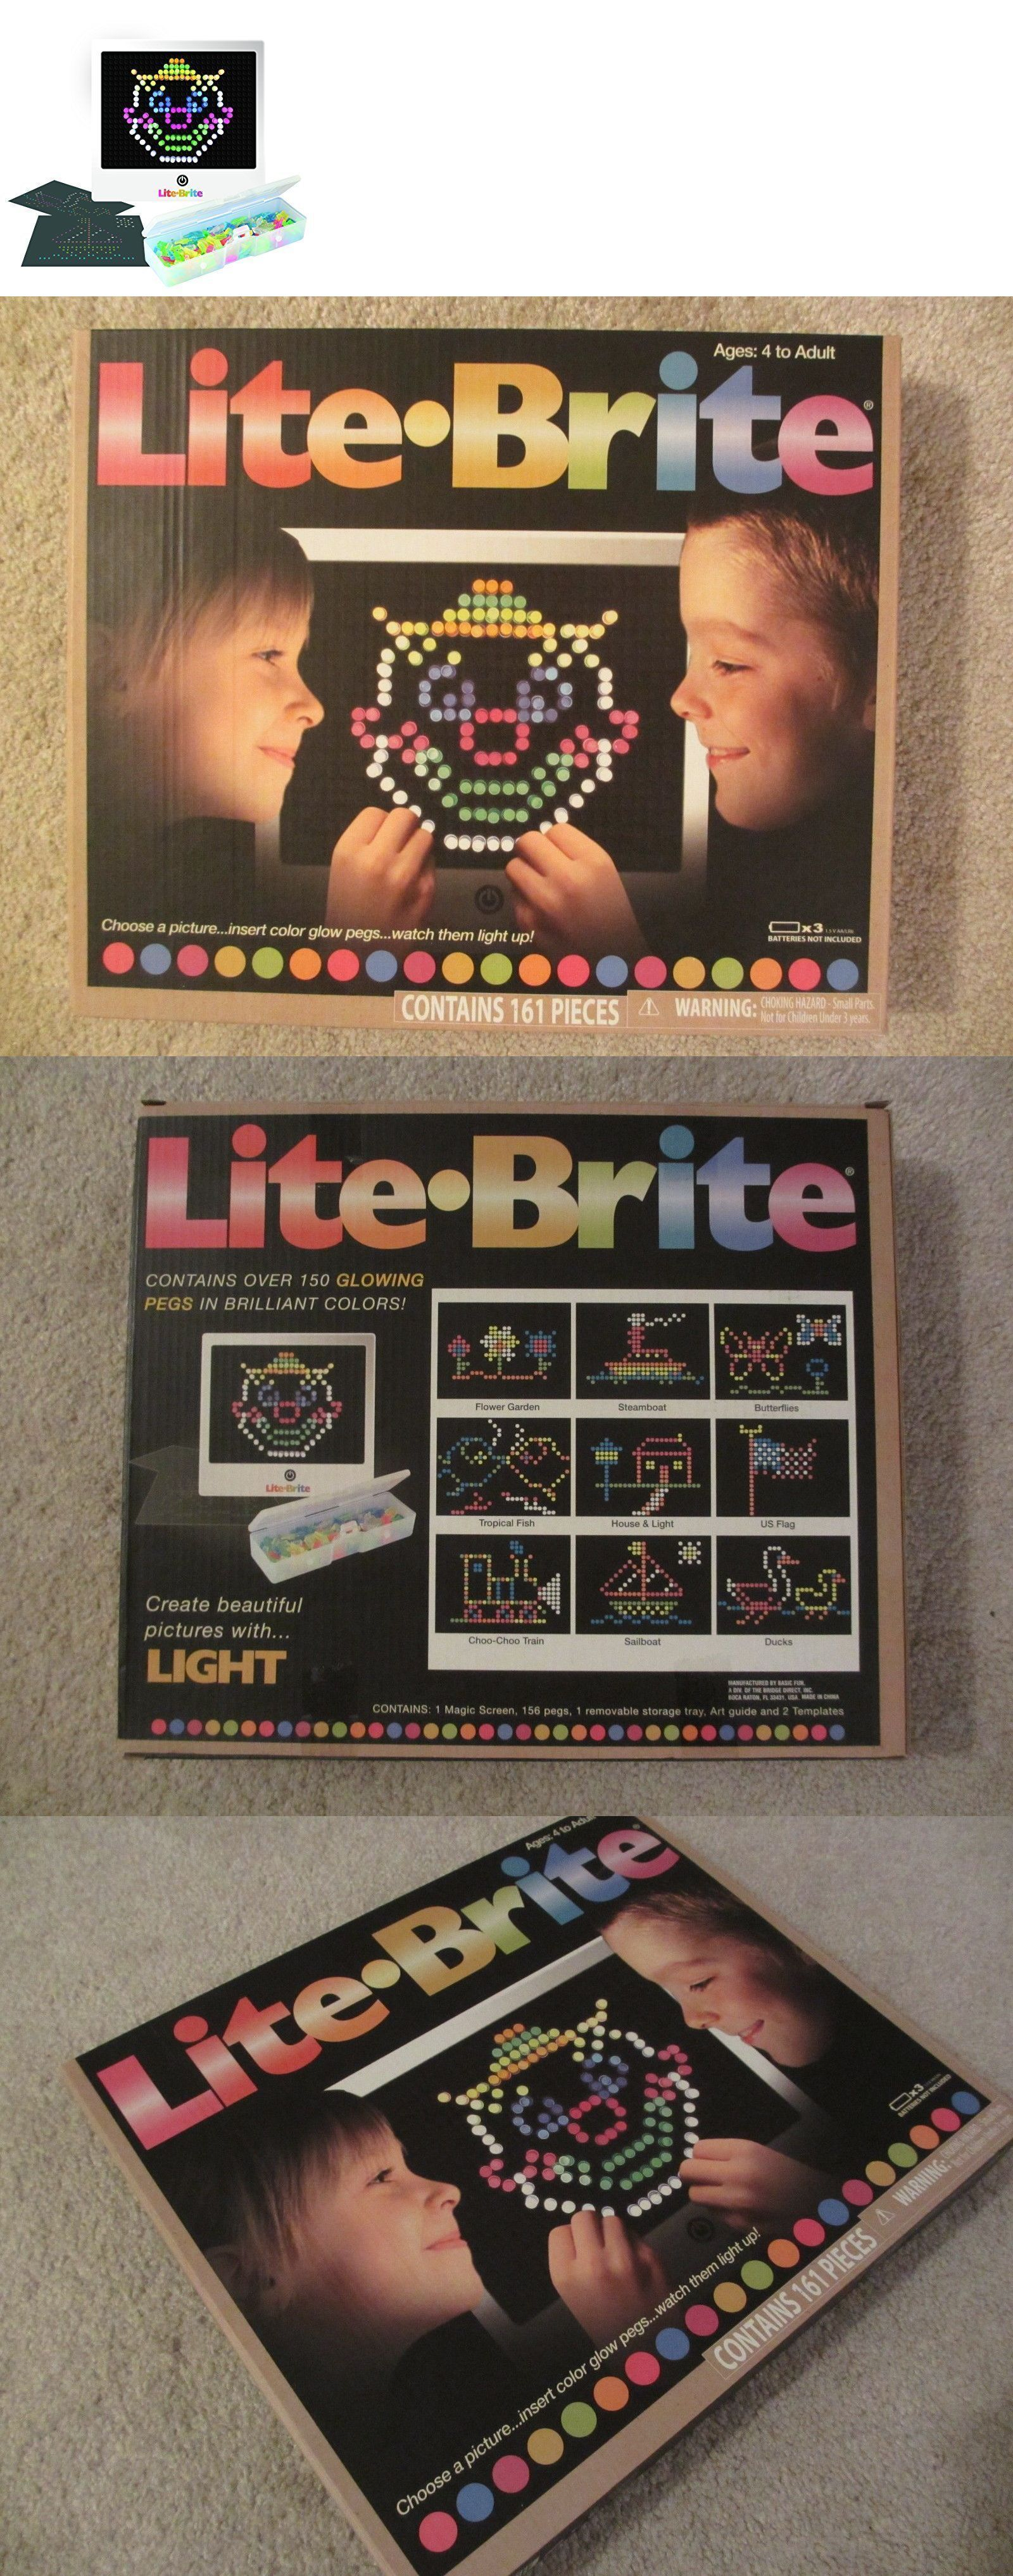 lite brite 152912 lite brite magic screen set pegs templates storage tray light bright box hasbro buy it now only 3999 on ebay